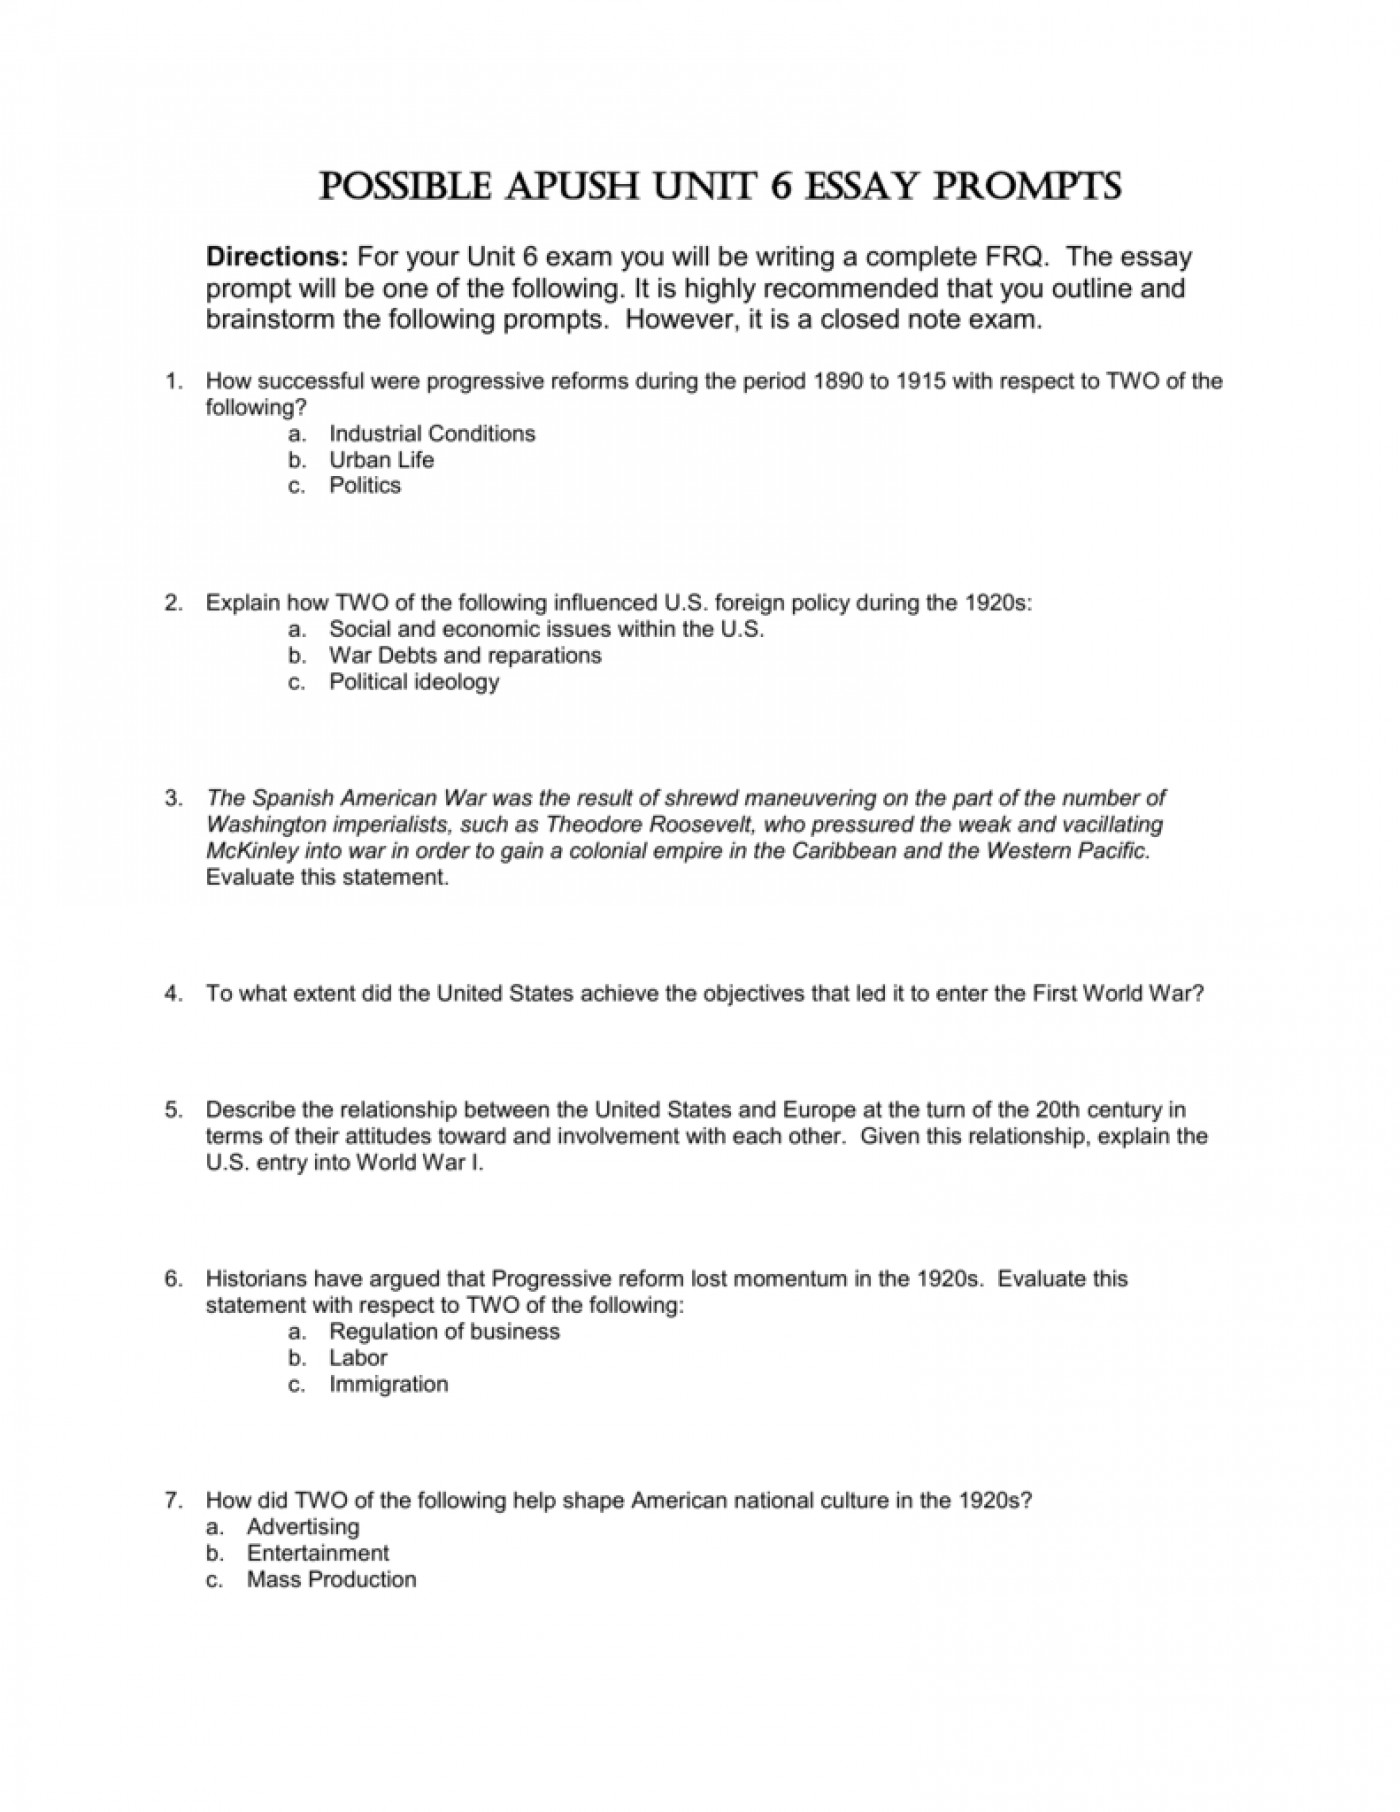 013 Essay Example 008989580 1 Best Prompts Topics For Lord Of The Flies High School Seniors Argumentative Frankenstein 1400